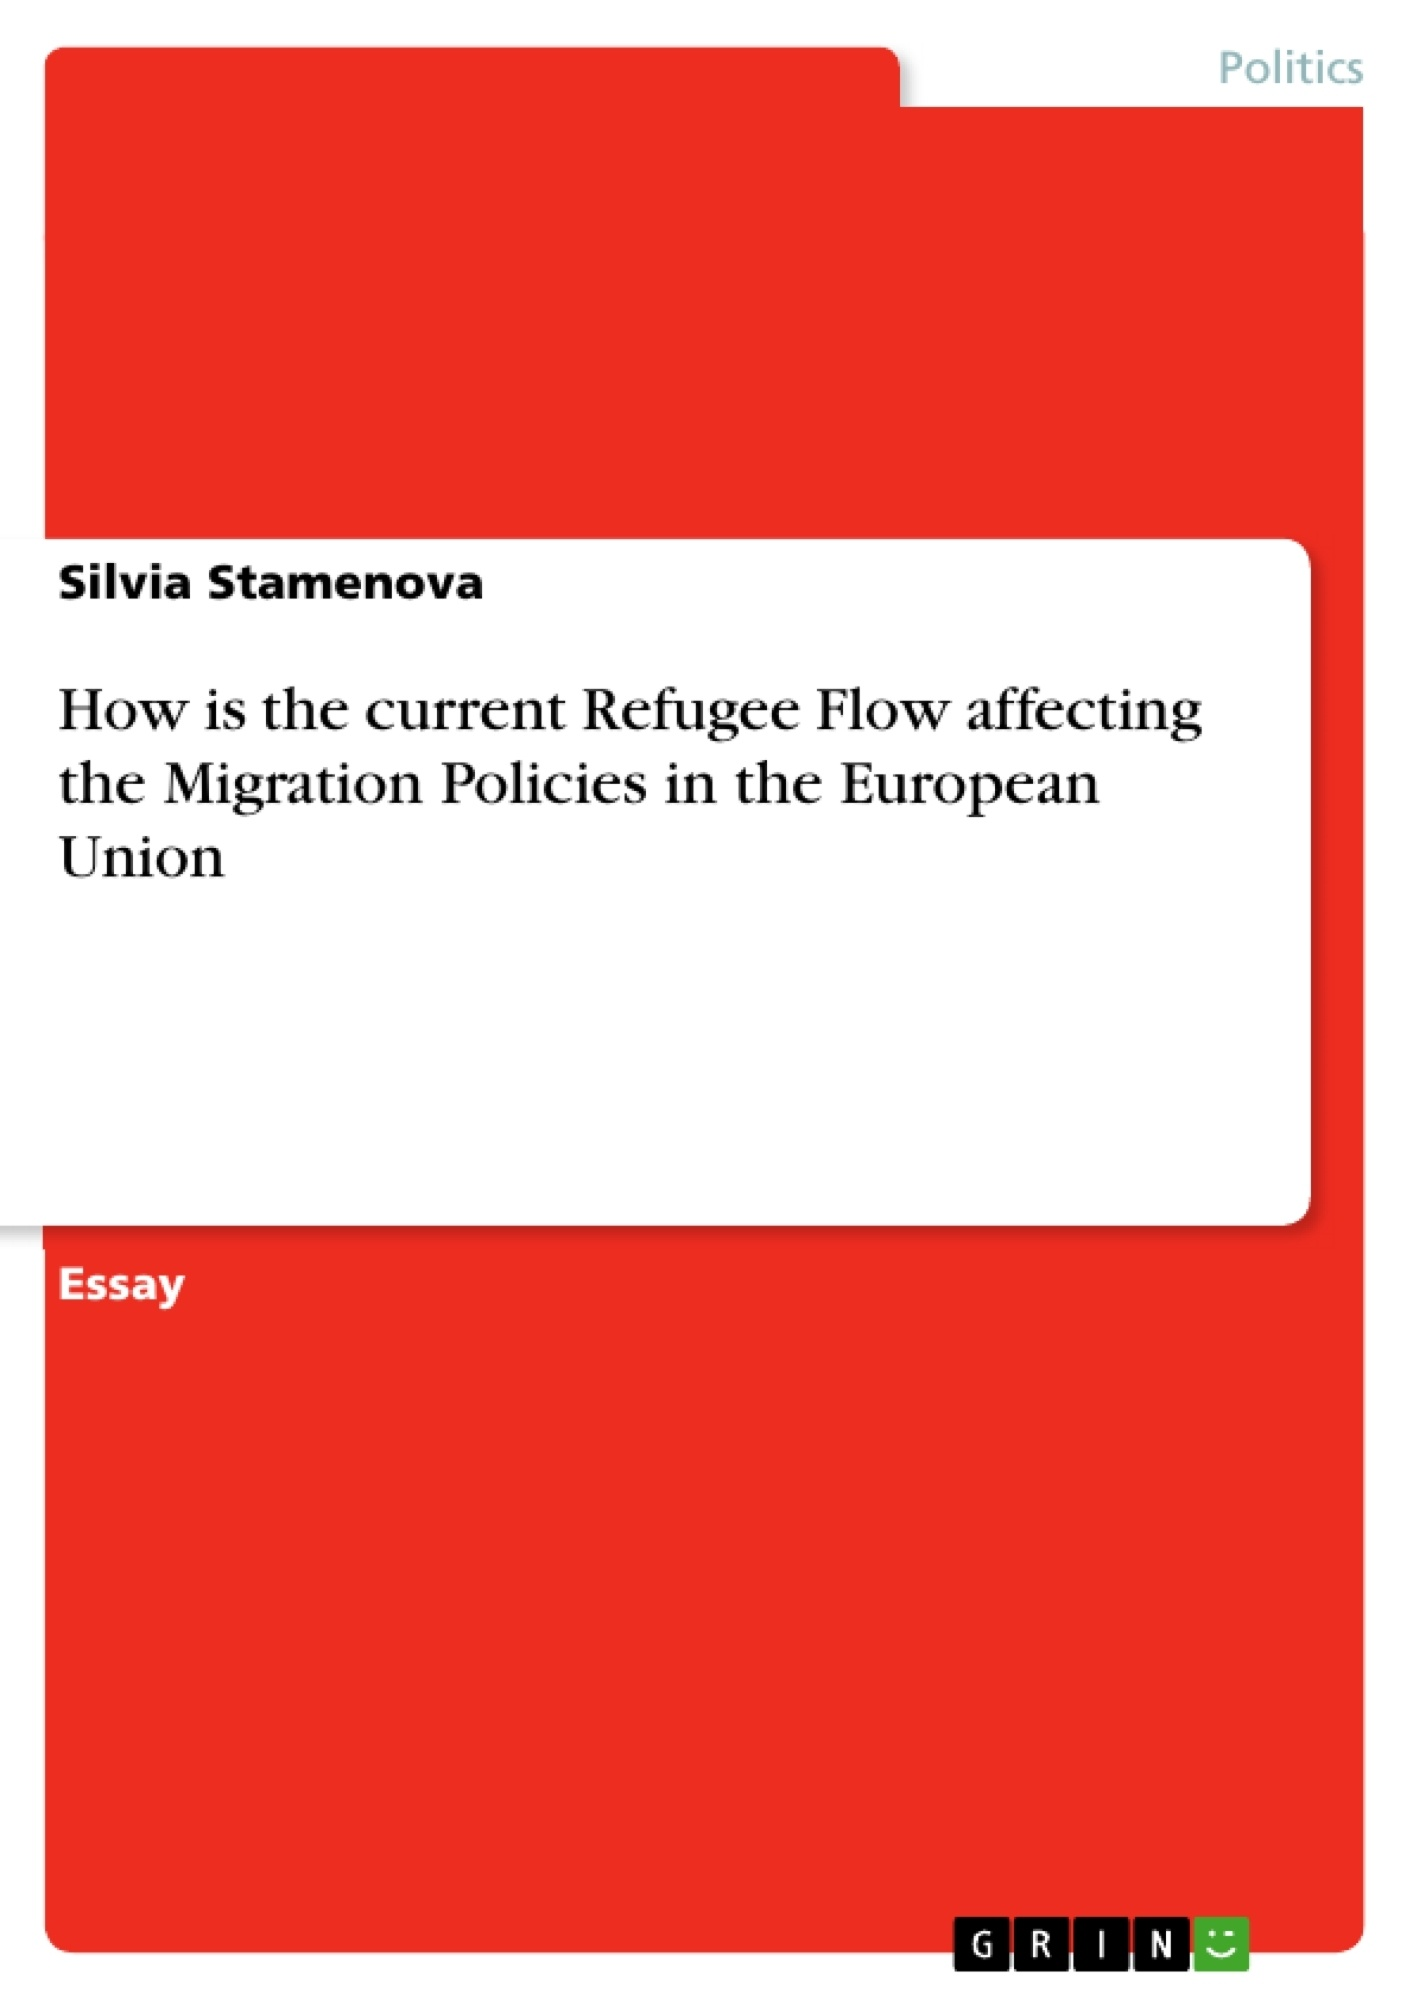 Title: How is the current Refugee Flow affecting the Migration Policies in the European Union